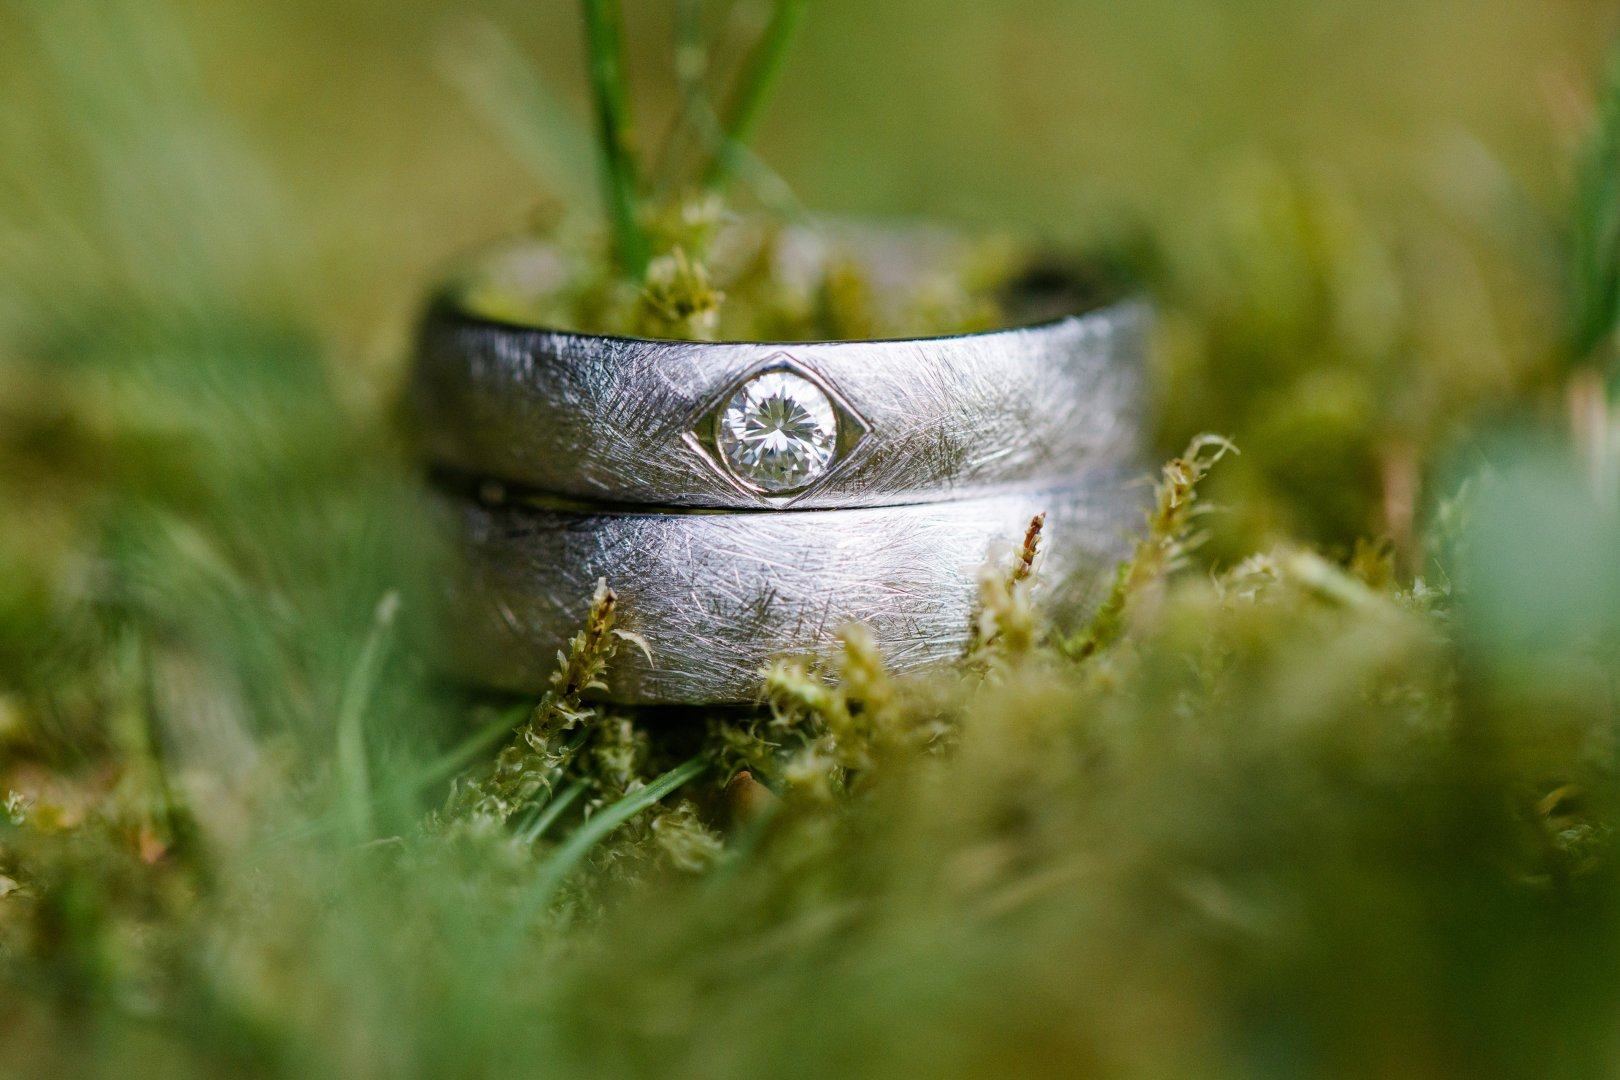 Water Green Grass Wedding ceremony supply Wedding ring Macro photography Close-up Ring Photography Plant Engagement ring Fashion accessory Metal Snail